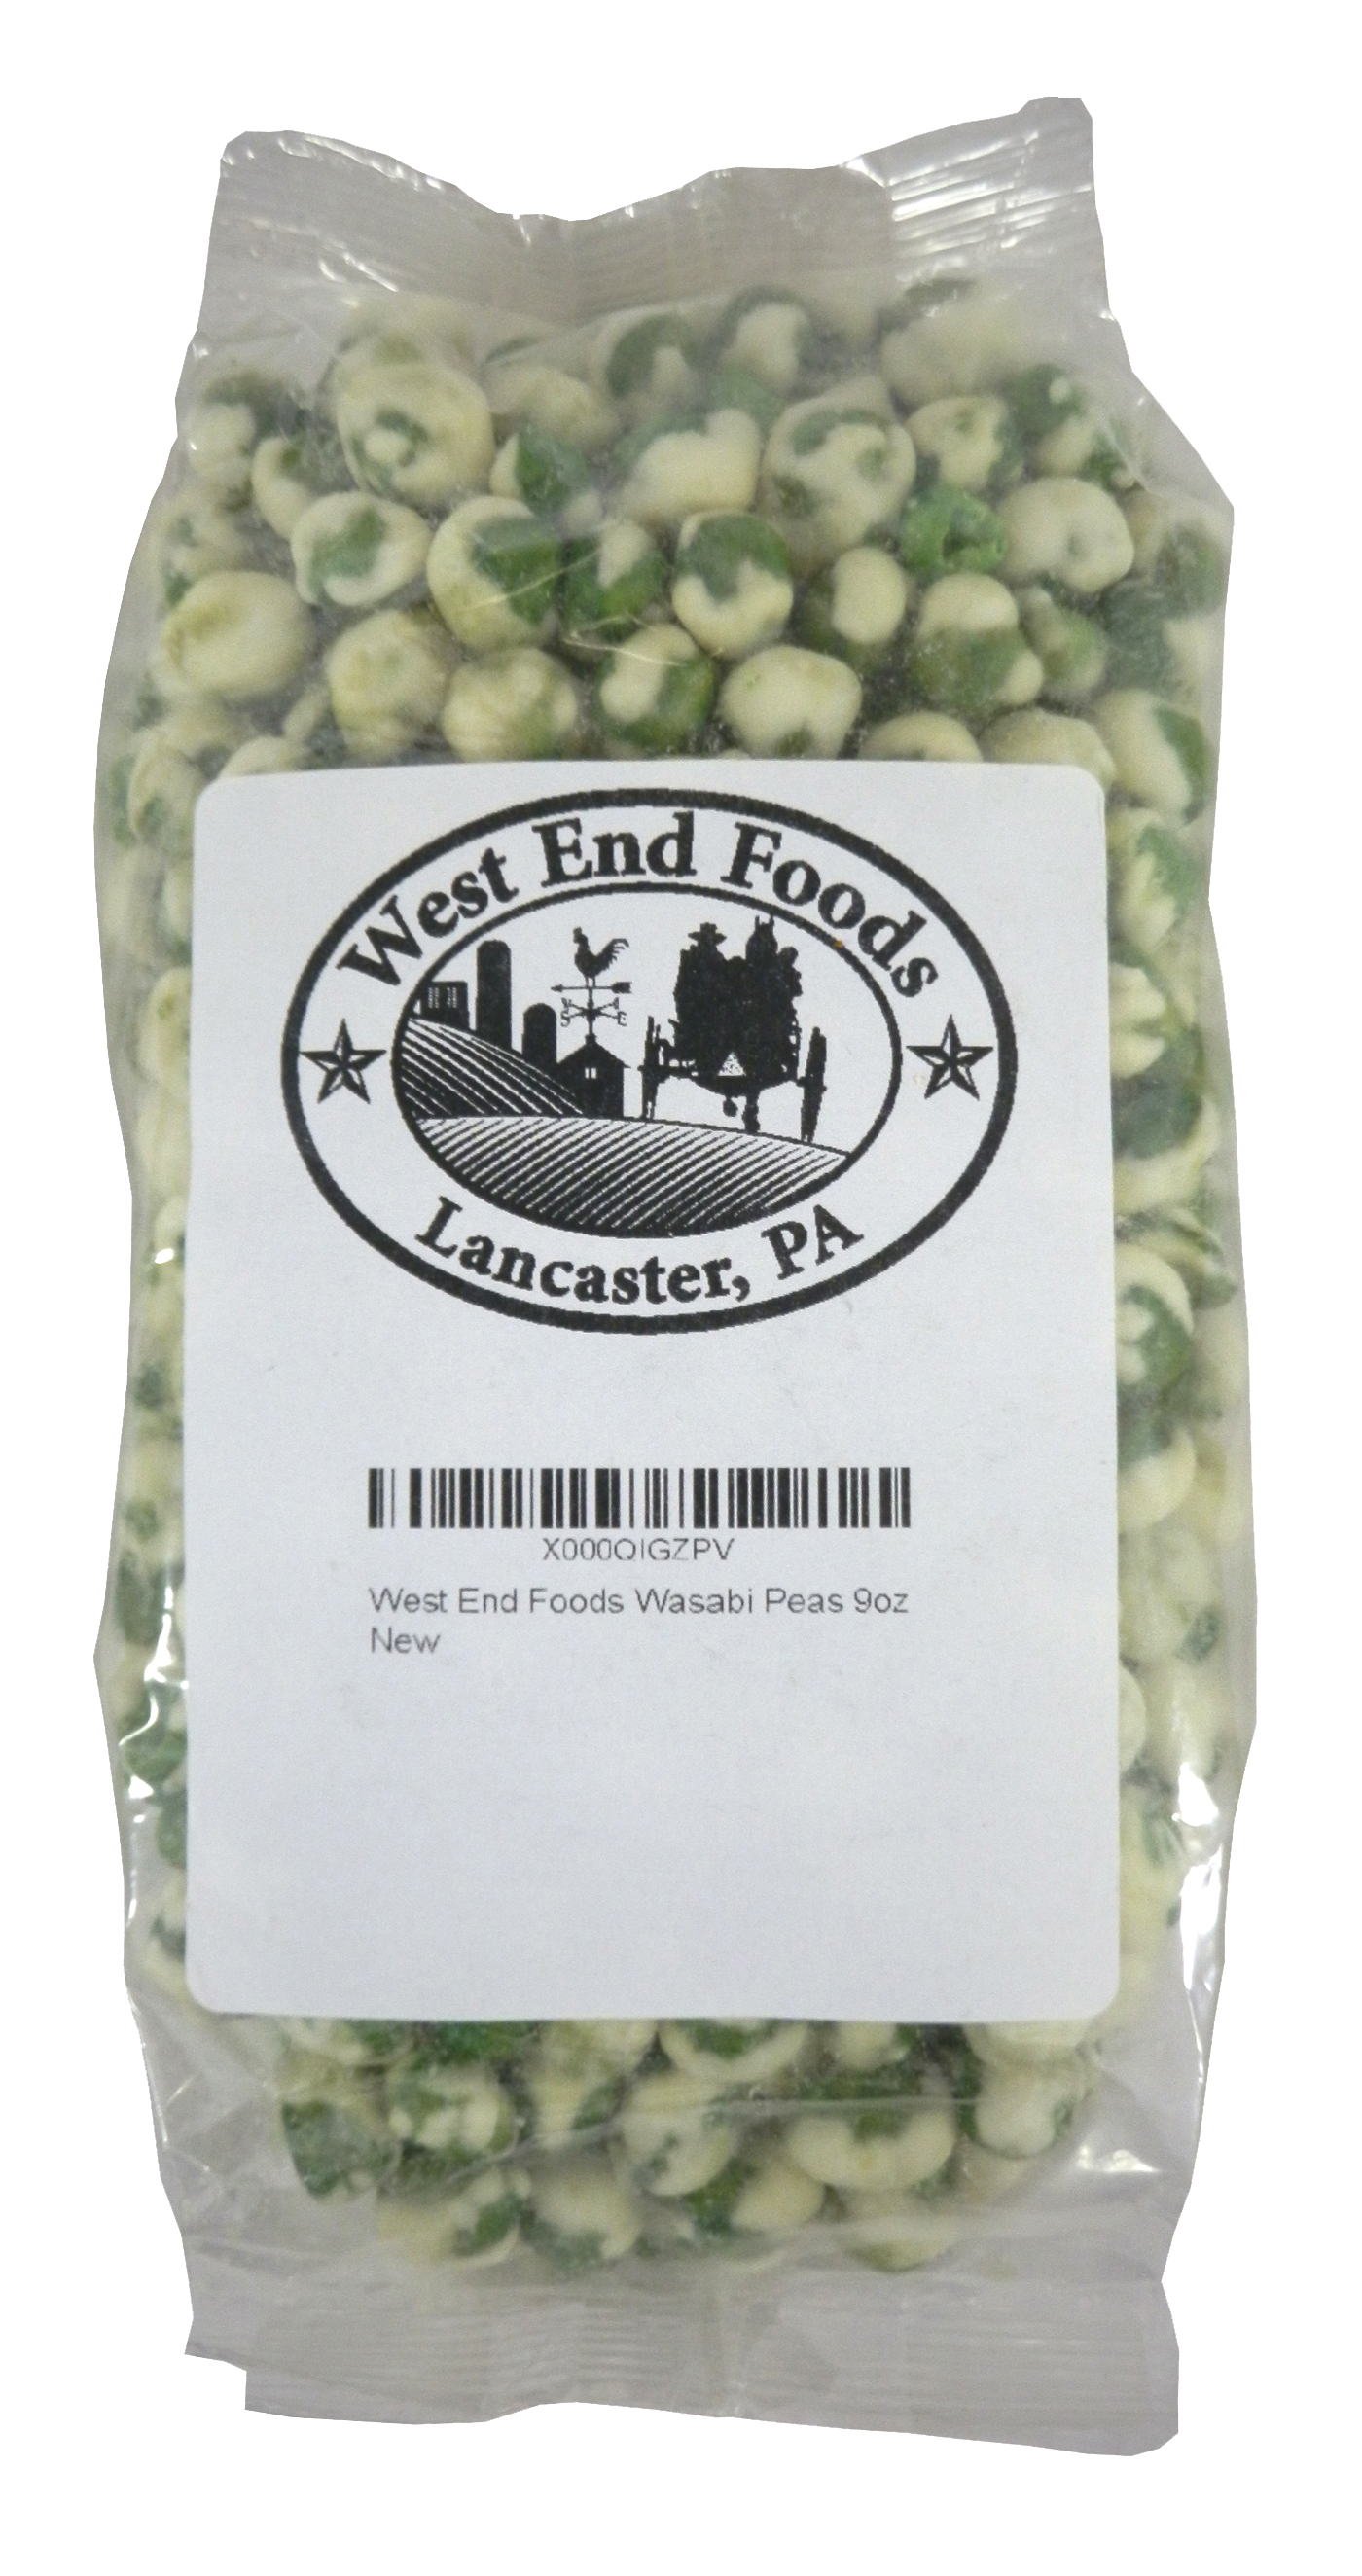 West End Foods Wasabi Peas 9oz